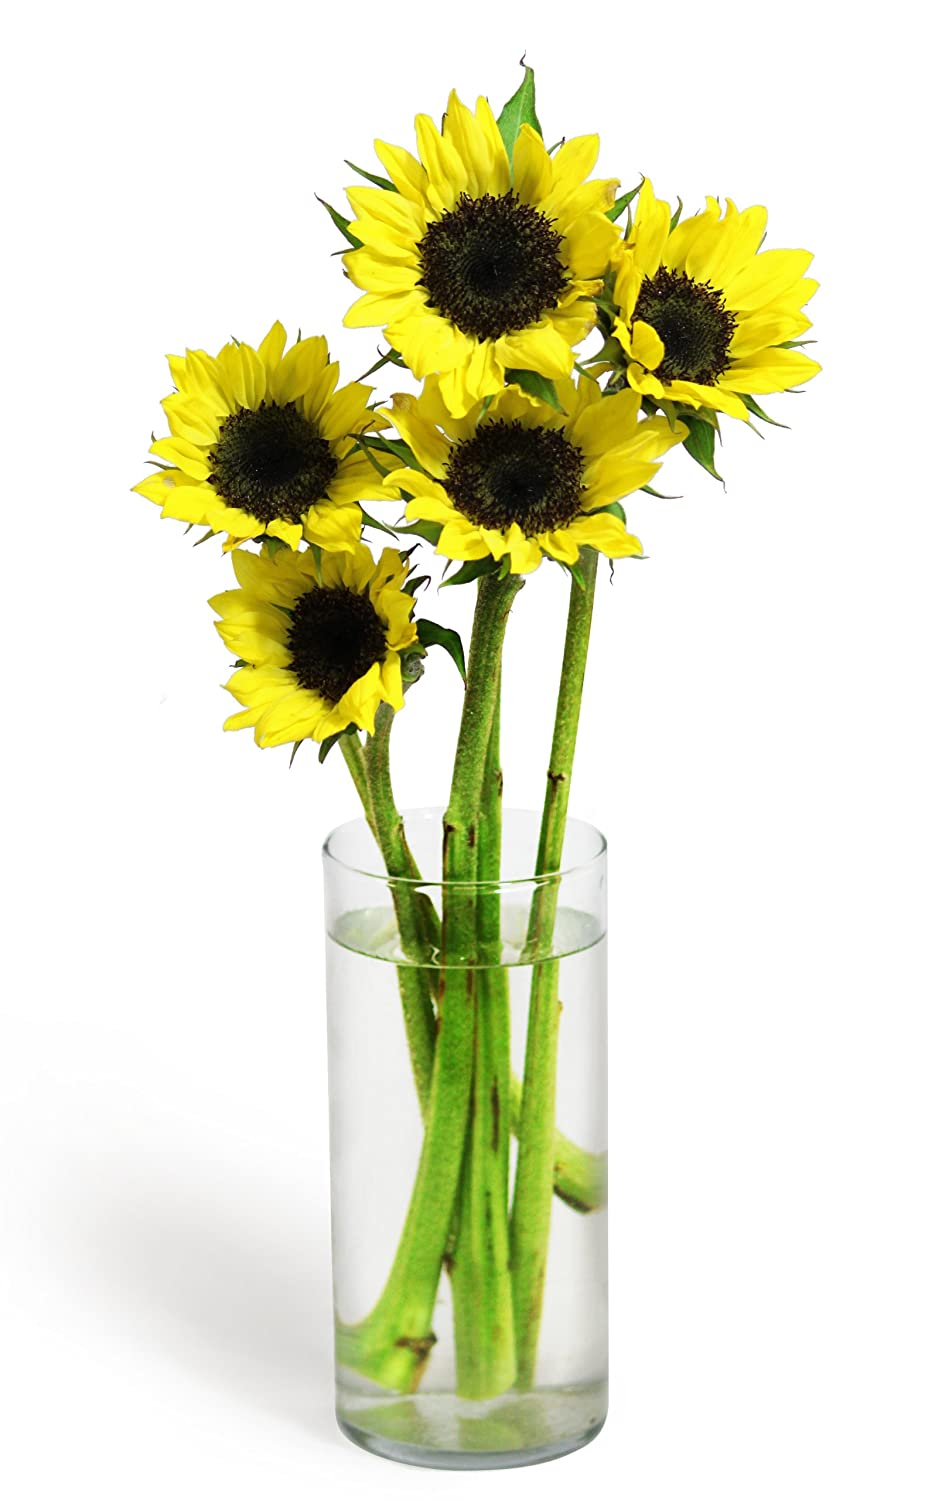 Amazon.com : Sunflower Bouquet (5 Stems) - Without Vase : Grocery ...